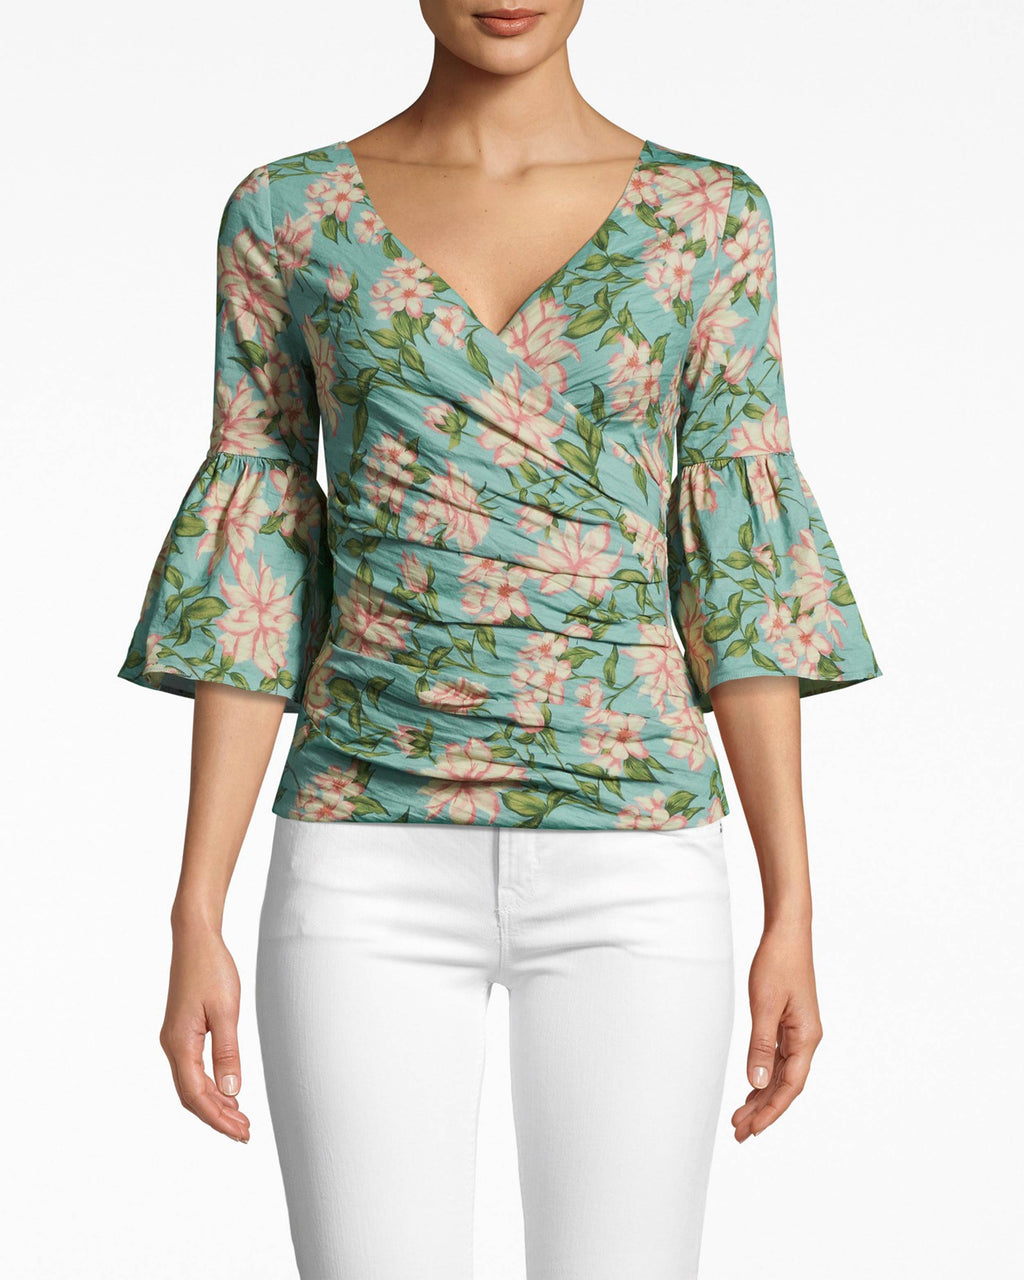 BI10168 - SPRING DREAM BELL SLEEVE TOP - tops - shirts - BELL SLEEVES, PLEASE. THIS STATEMENT TOP IS DESIGNED IN OUR ICONIC COTTON METAL IN THE NEW SPRING DREAM PRINT. THIS WRAPPED STYLE HAS BELL SLEEVES AND A V NECK. EXPOSED BACK ZIPPER.